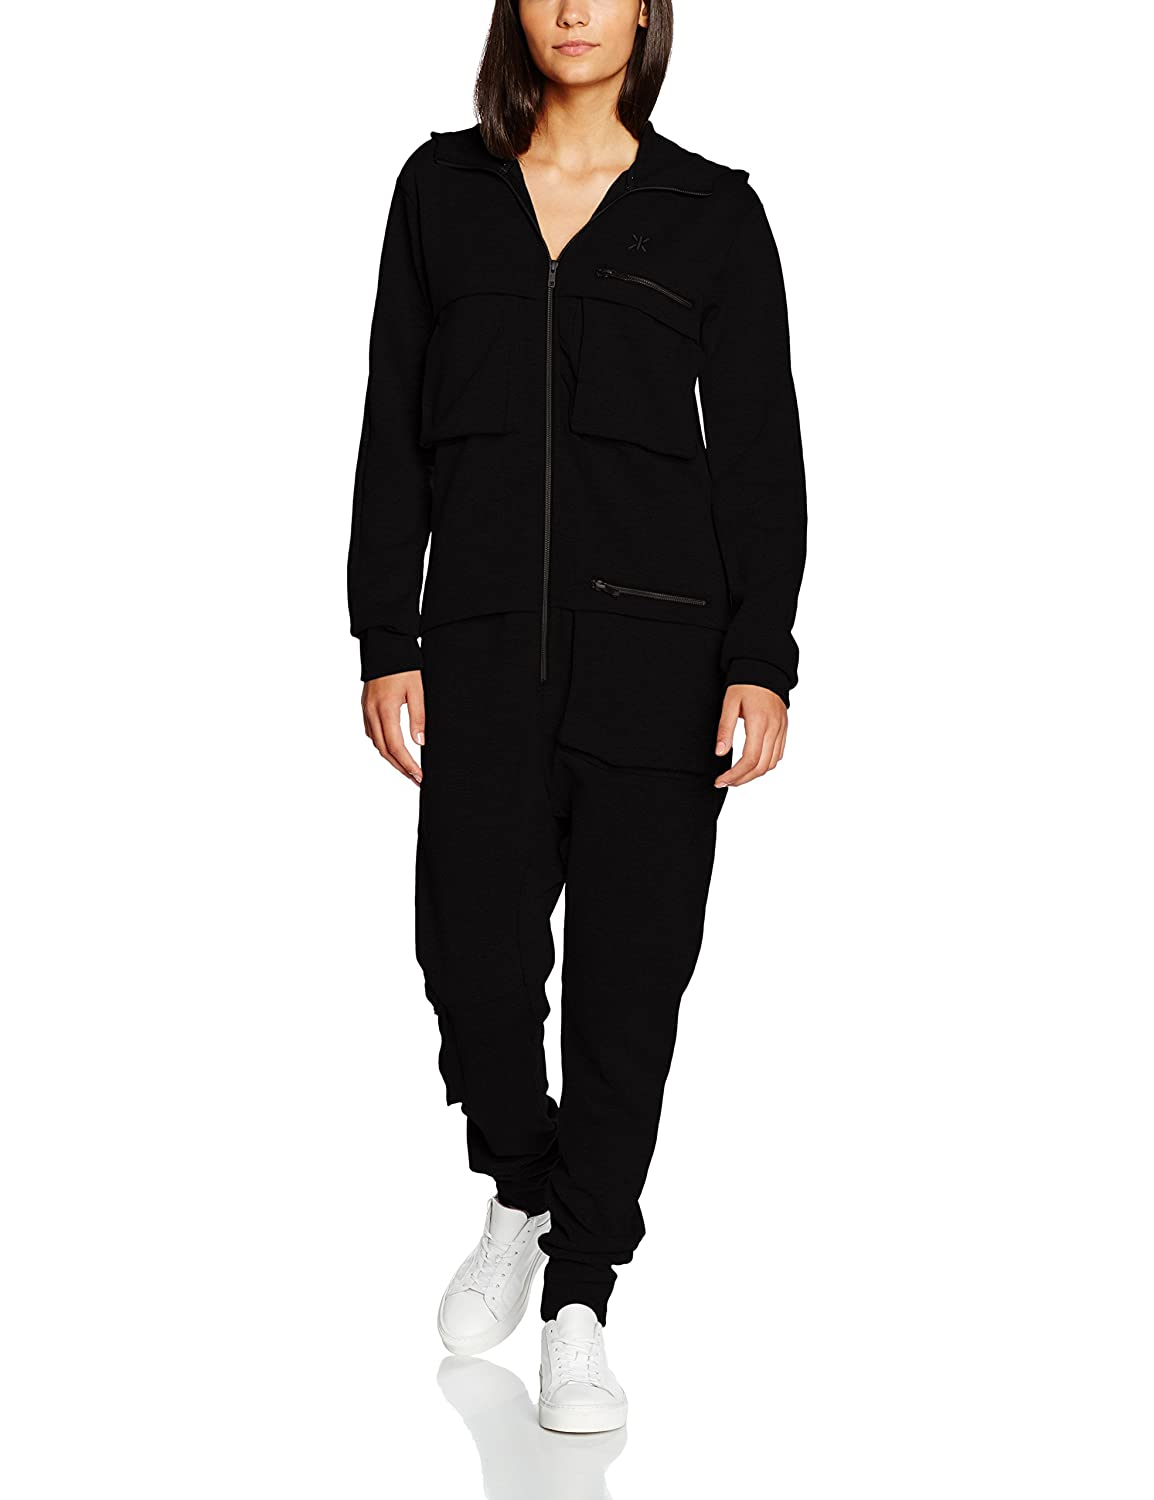 TALLA W38. One Piece Jumpsuit Distance Buzo Unisex Adulto